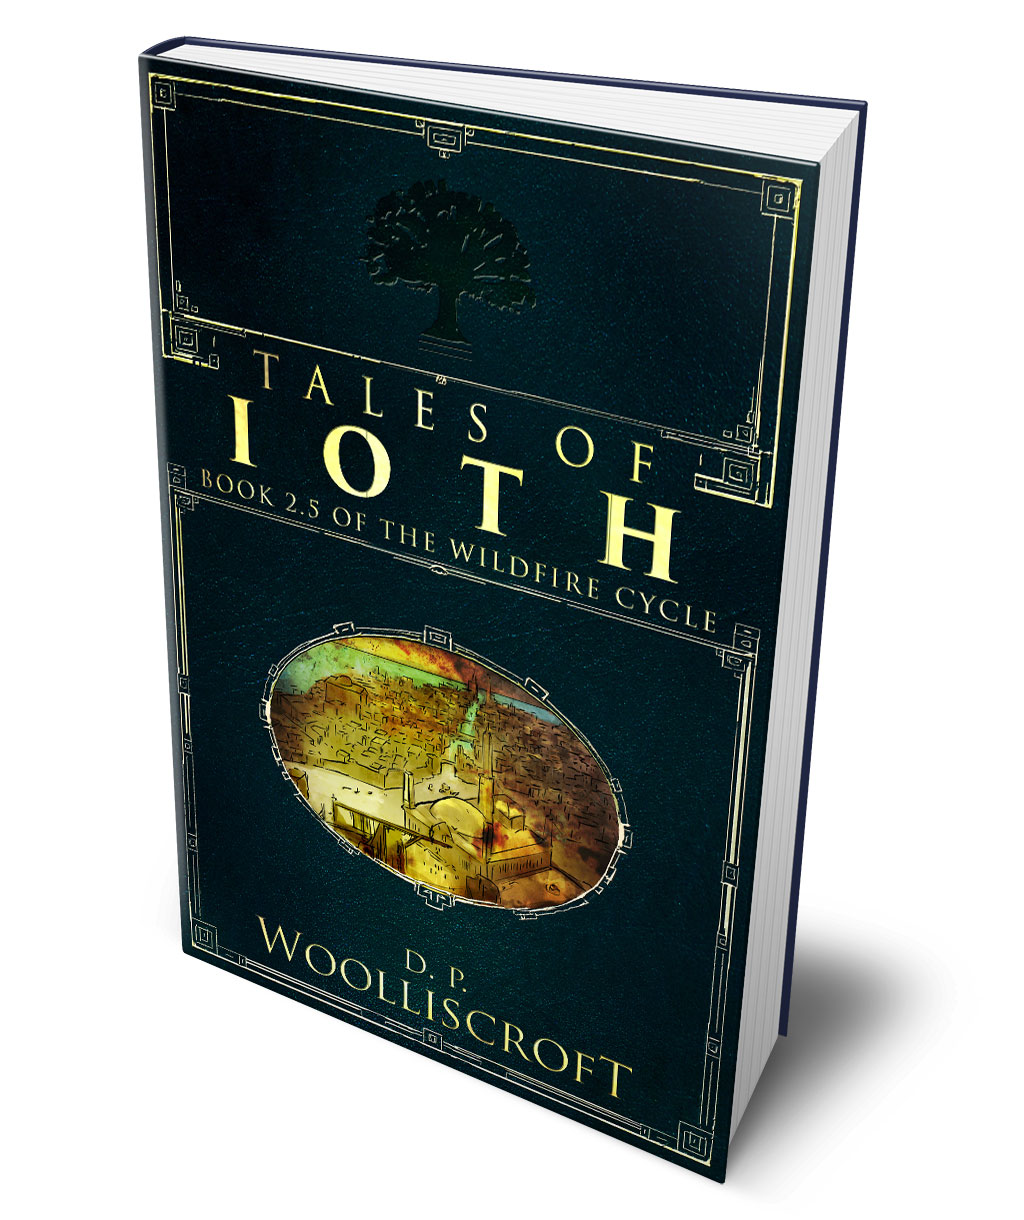 Tales of Ioth by D.P. Woolliscroft